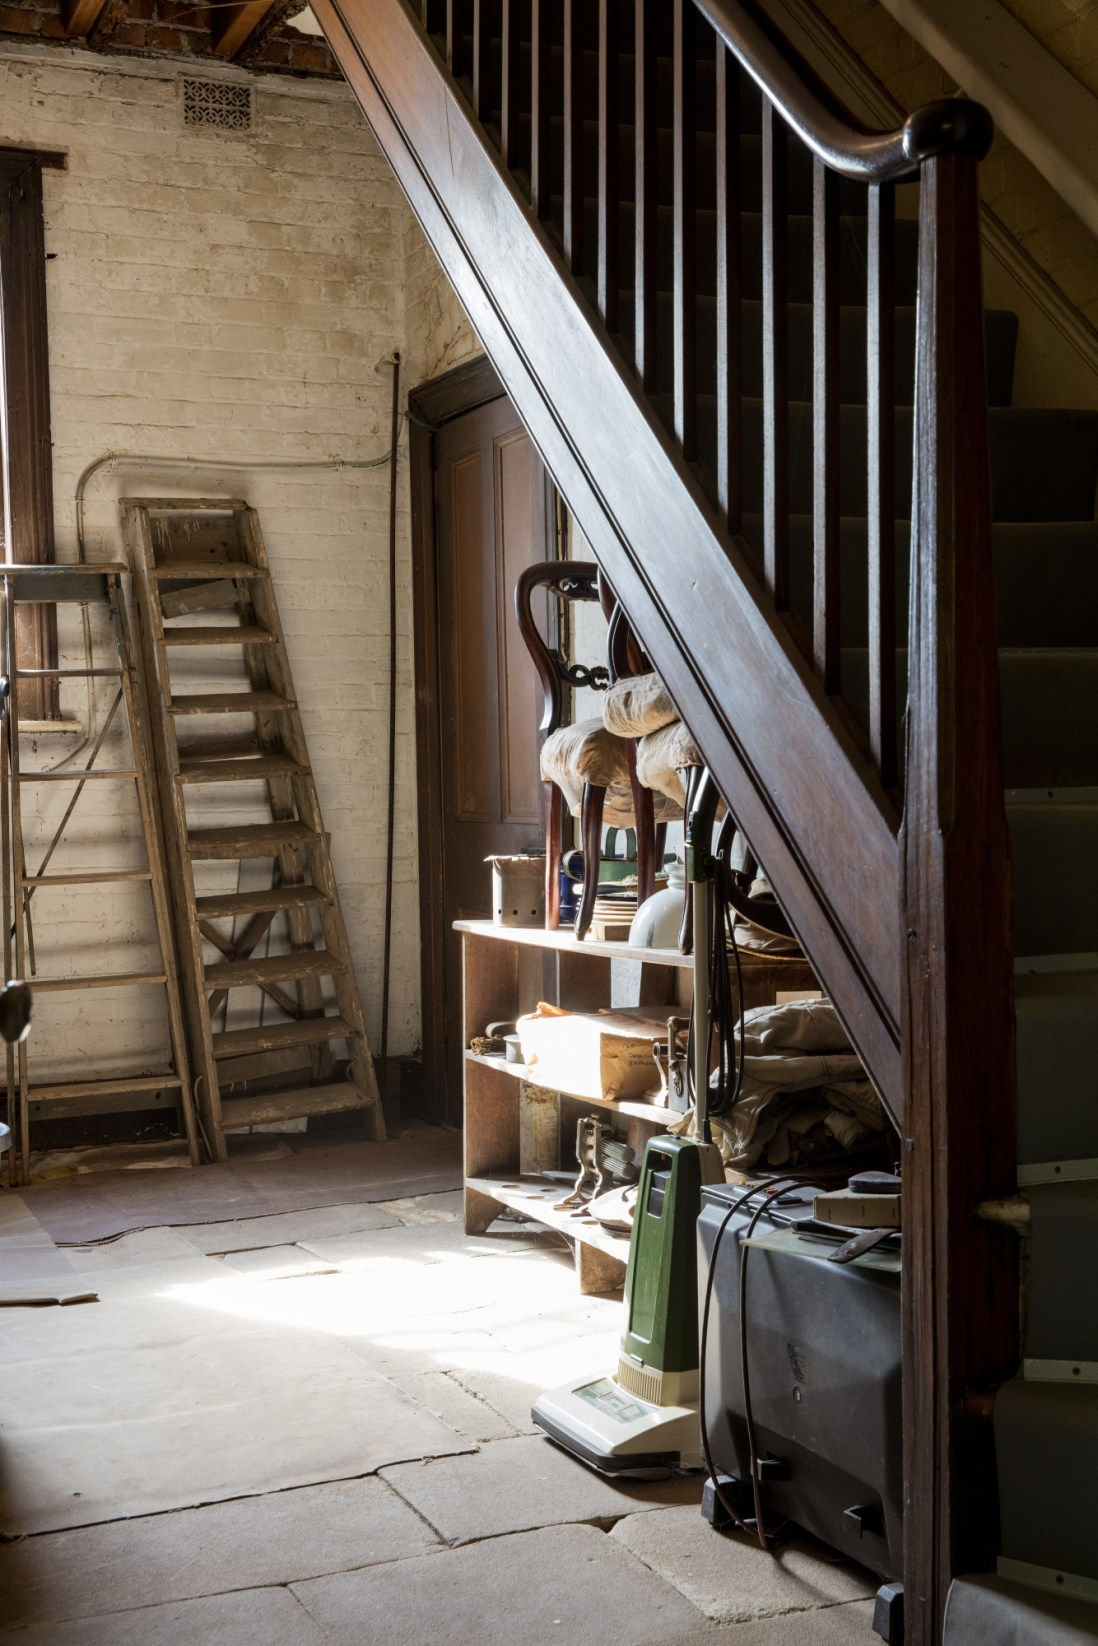 Equipment leaning against wall underneath wooden staircase.